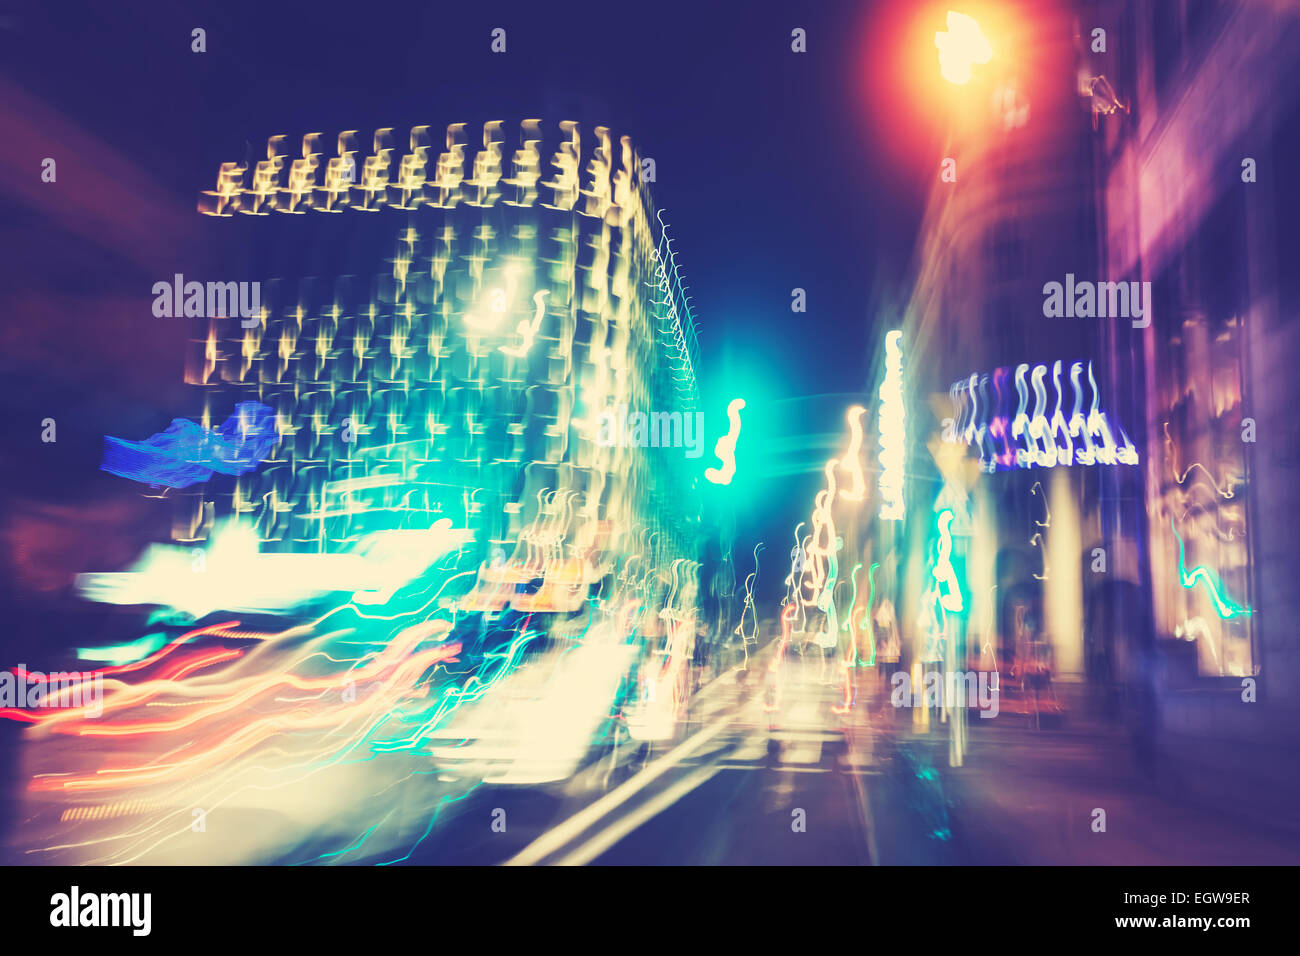 Retro filtered city traffic lights in motion blur. - Stock Image